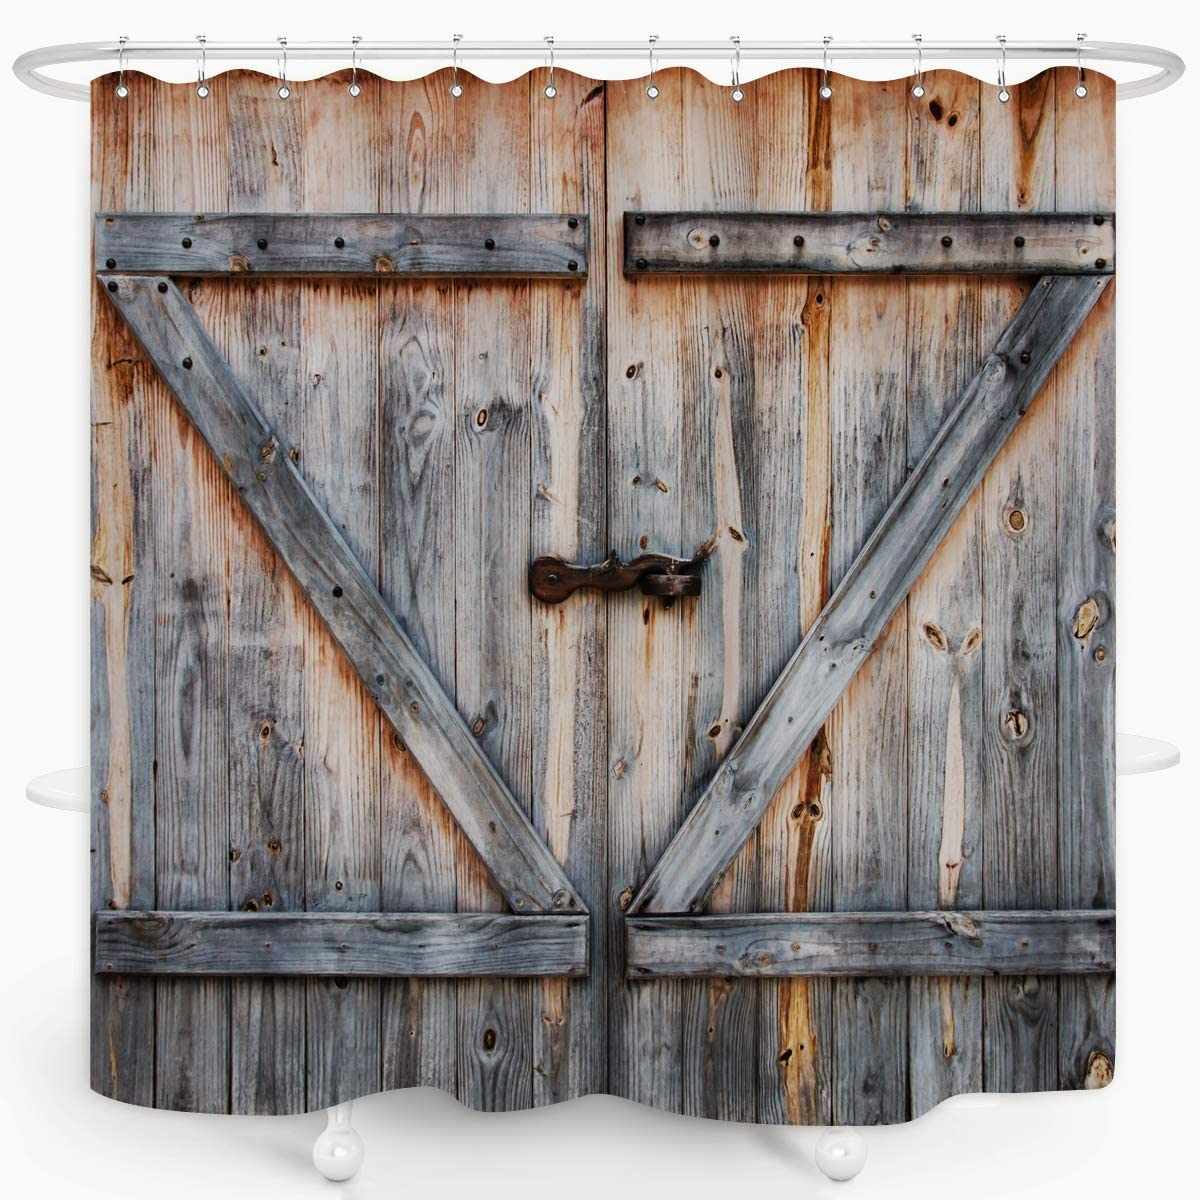 Rustic Shower Curtain Old Wooden Garage Door Bath Curtain American Native Country Farm House Style Waterproof Fabric Bathroom Décor 72x72 Plastic Hooks 12PCS